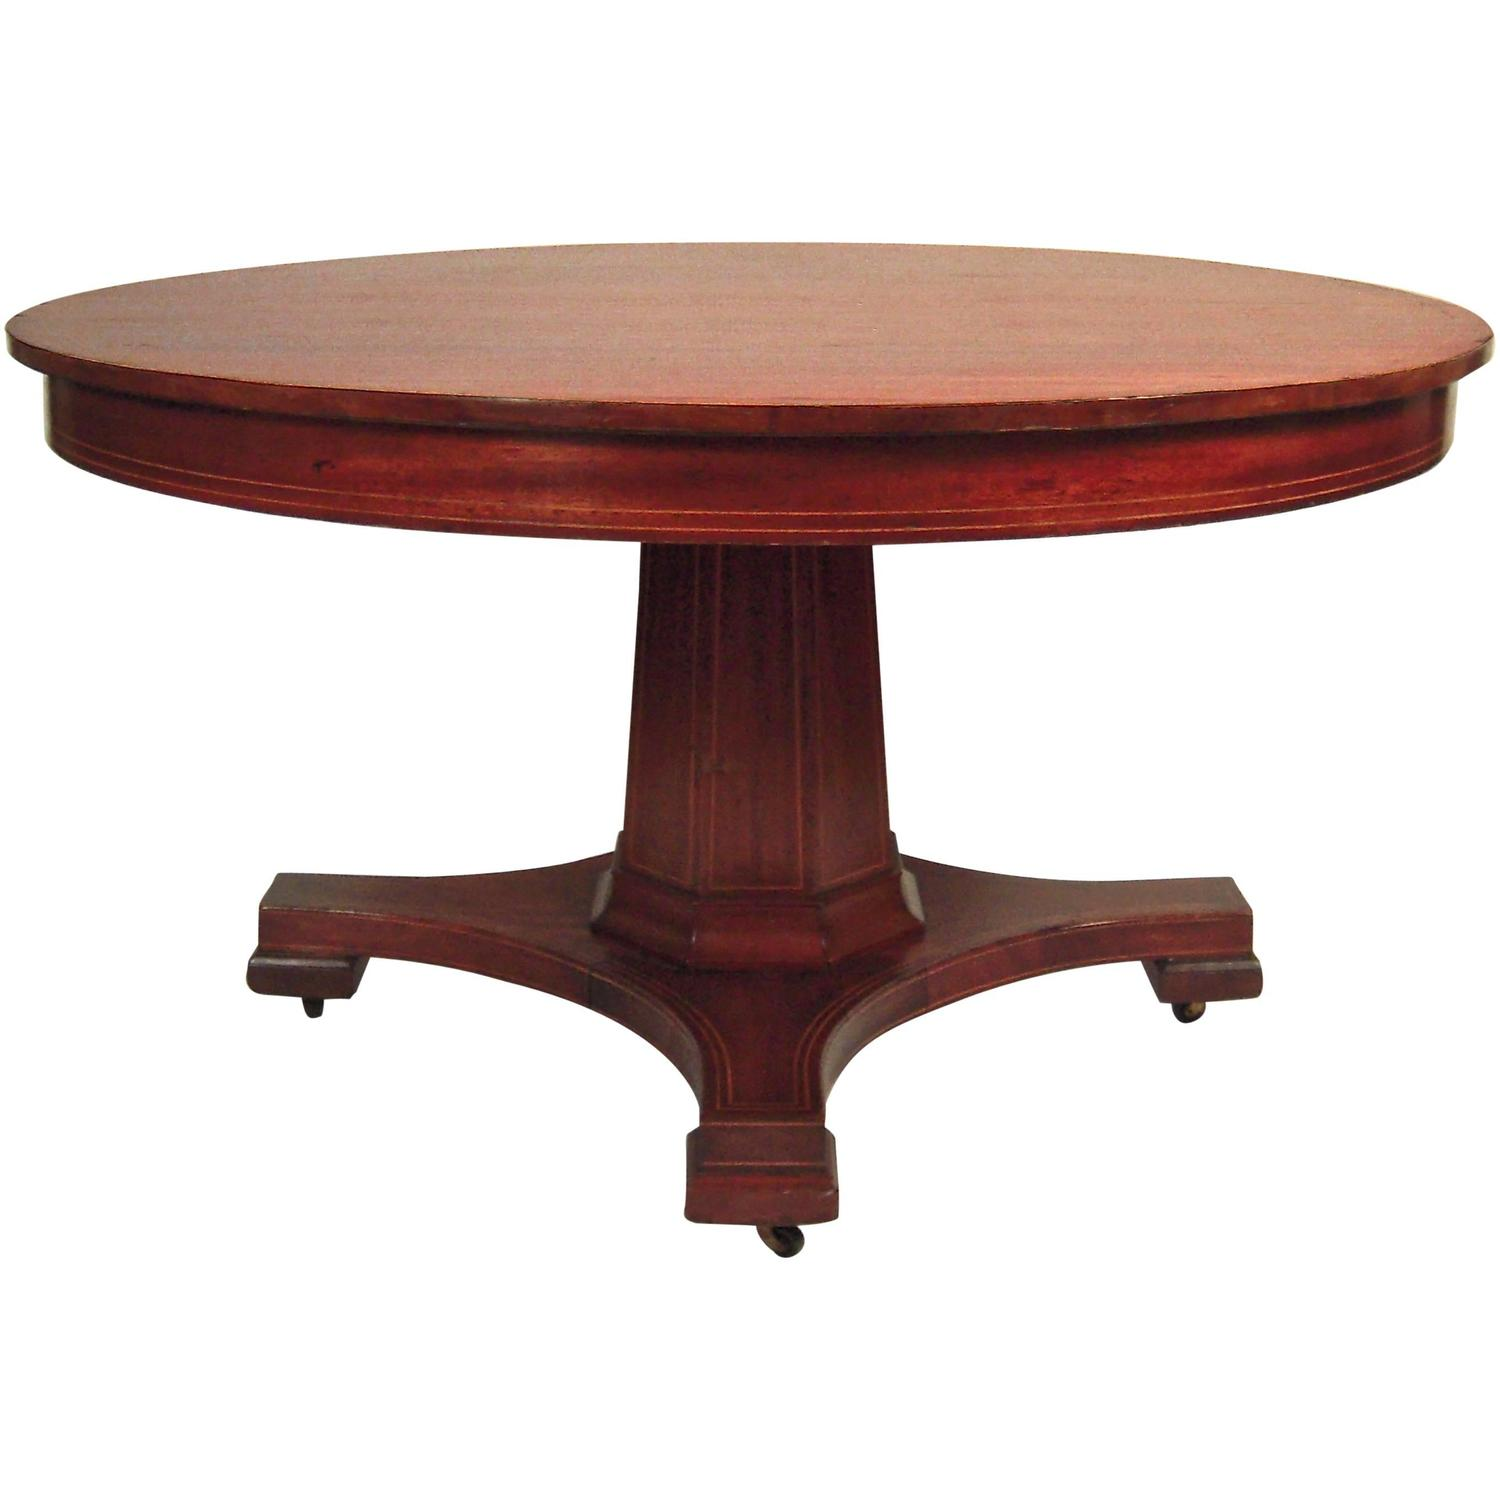 inlaid mahogany round extension dining table 54 diameter